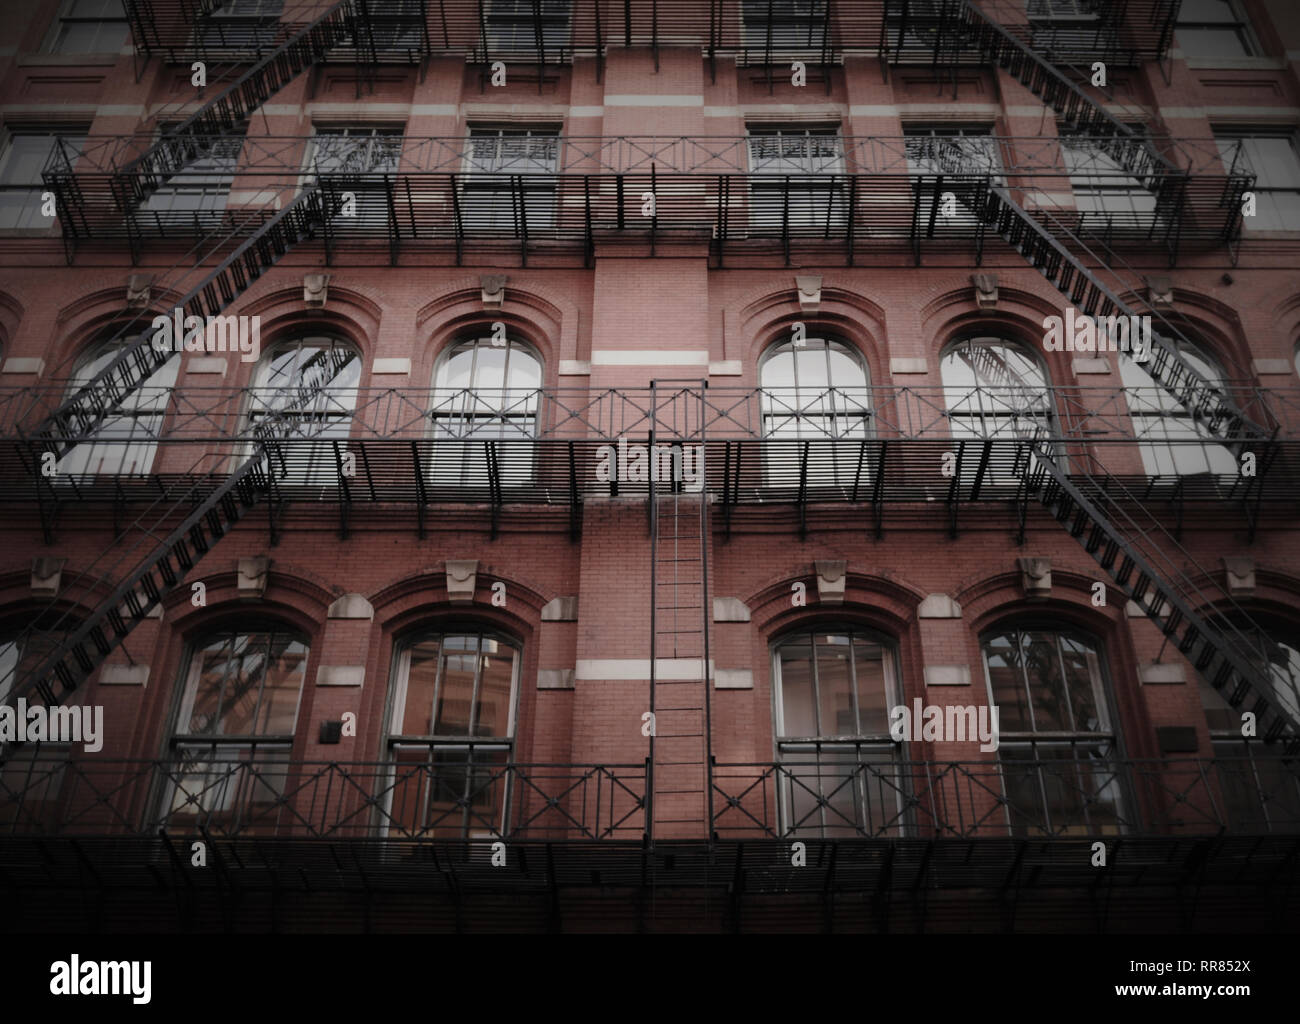 An apartment building in New York featuring fire escapes, arched keystone windows, ornamental railing  and symmetry. - Stock Image